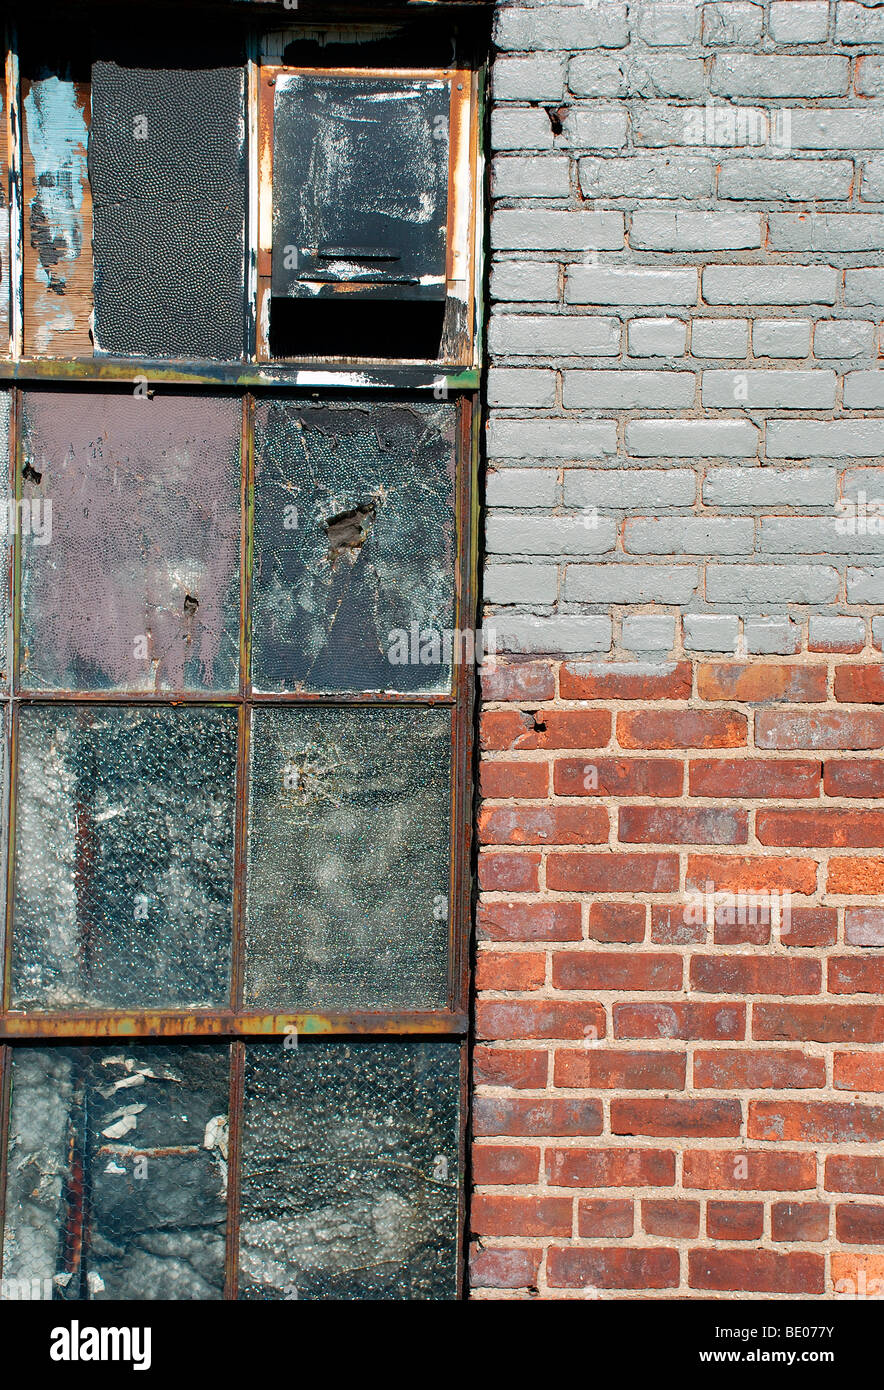 exterior view of painted windows in old brick wall Stock Photo